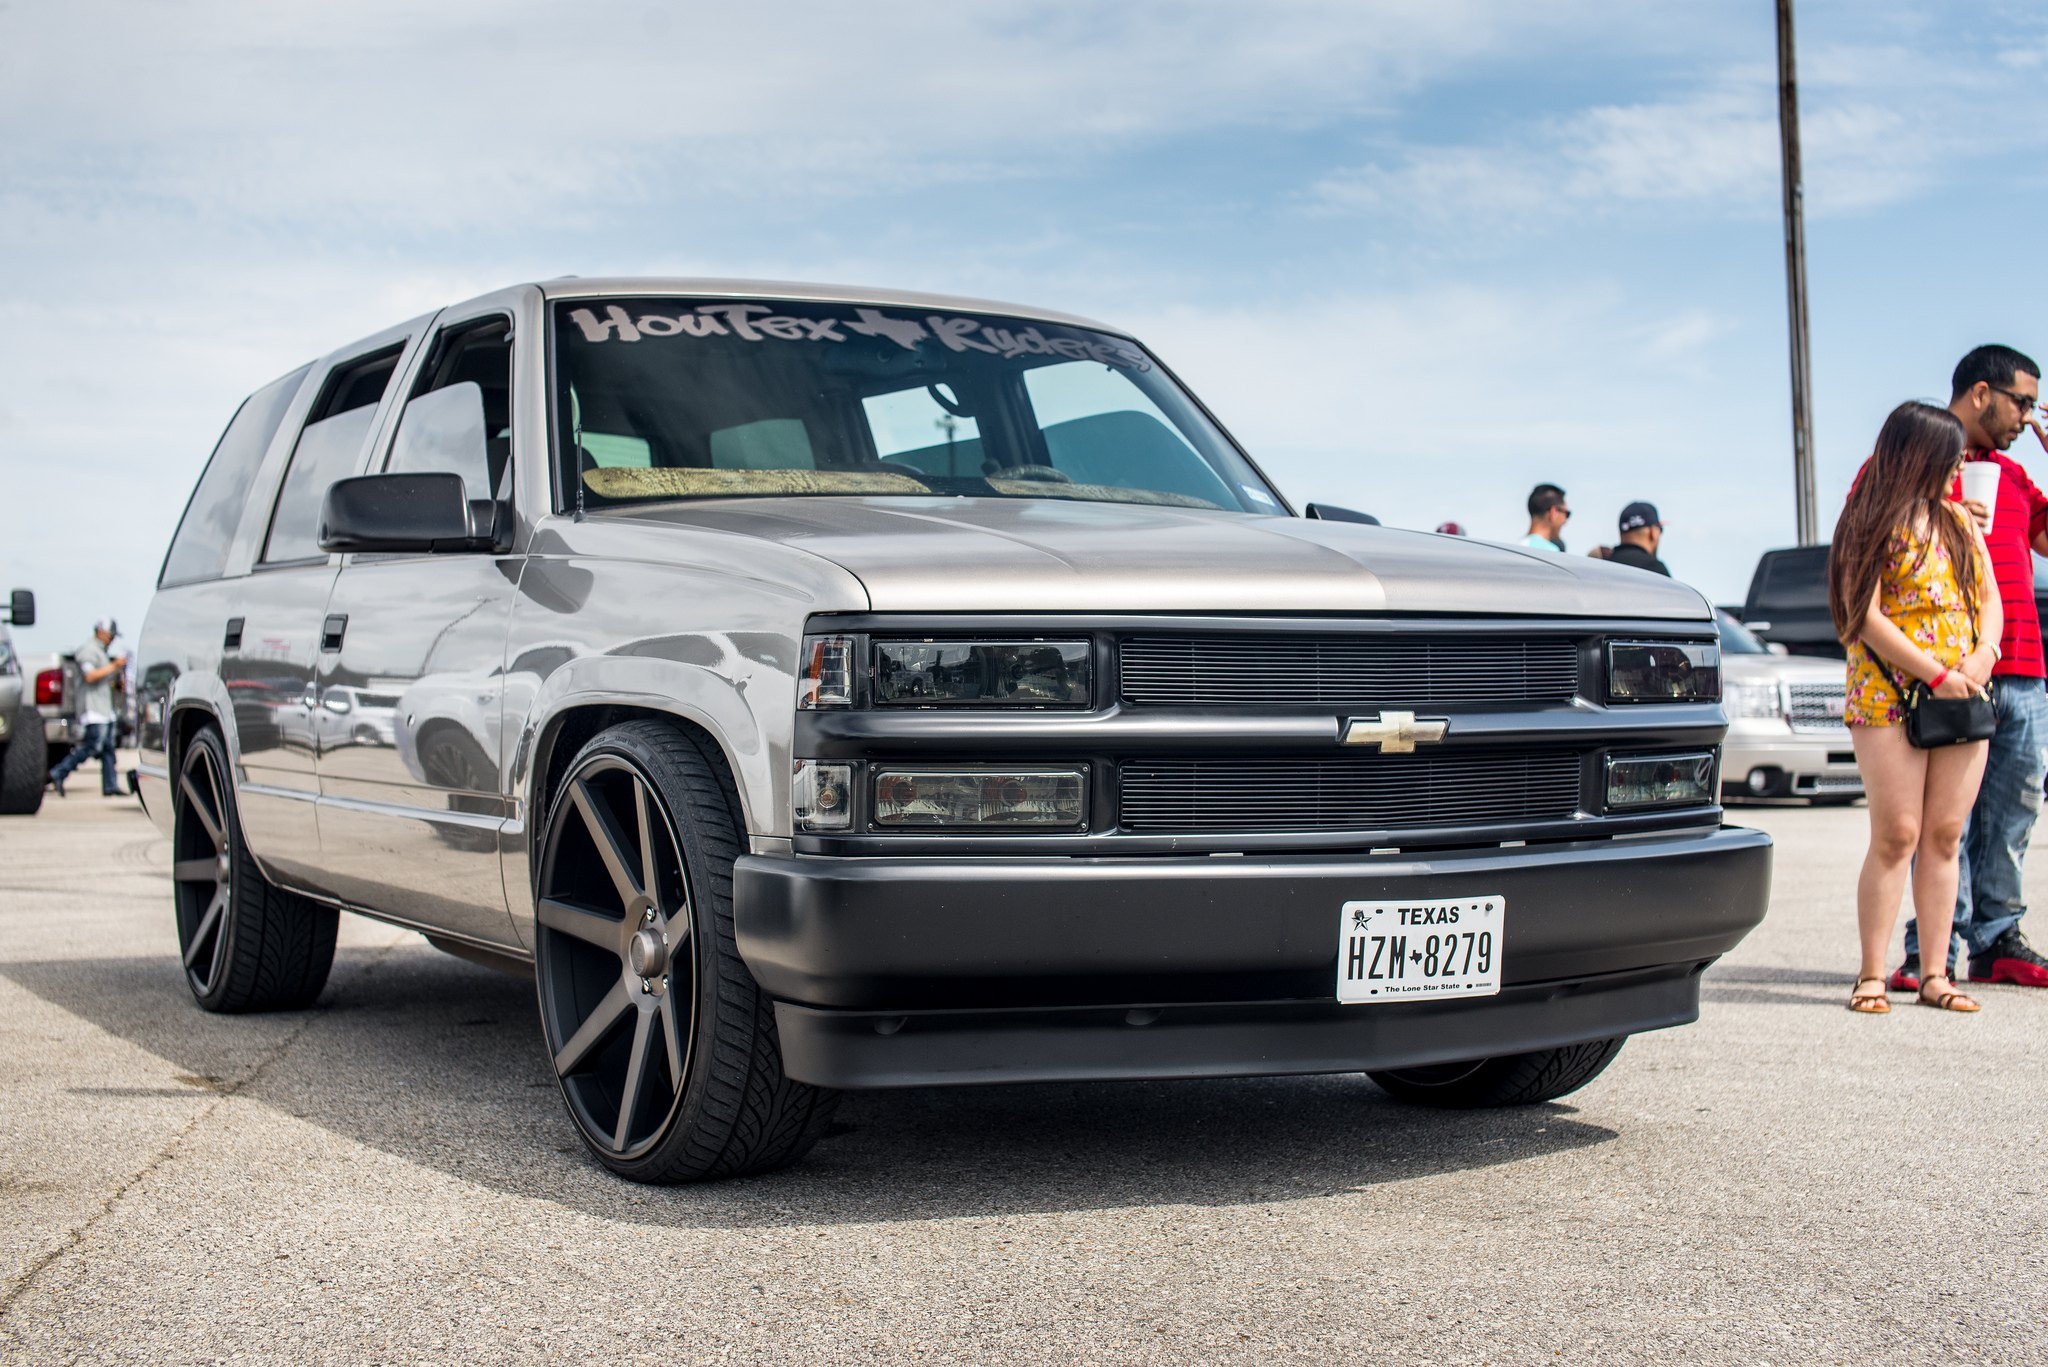 custom 2006 chevy tahoe images mods photos upgrades gallery. Black Bedroom Furniture Sets. Home Design Ideas